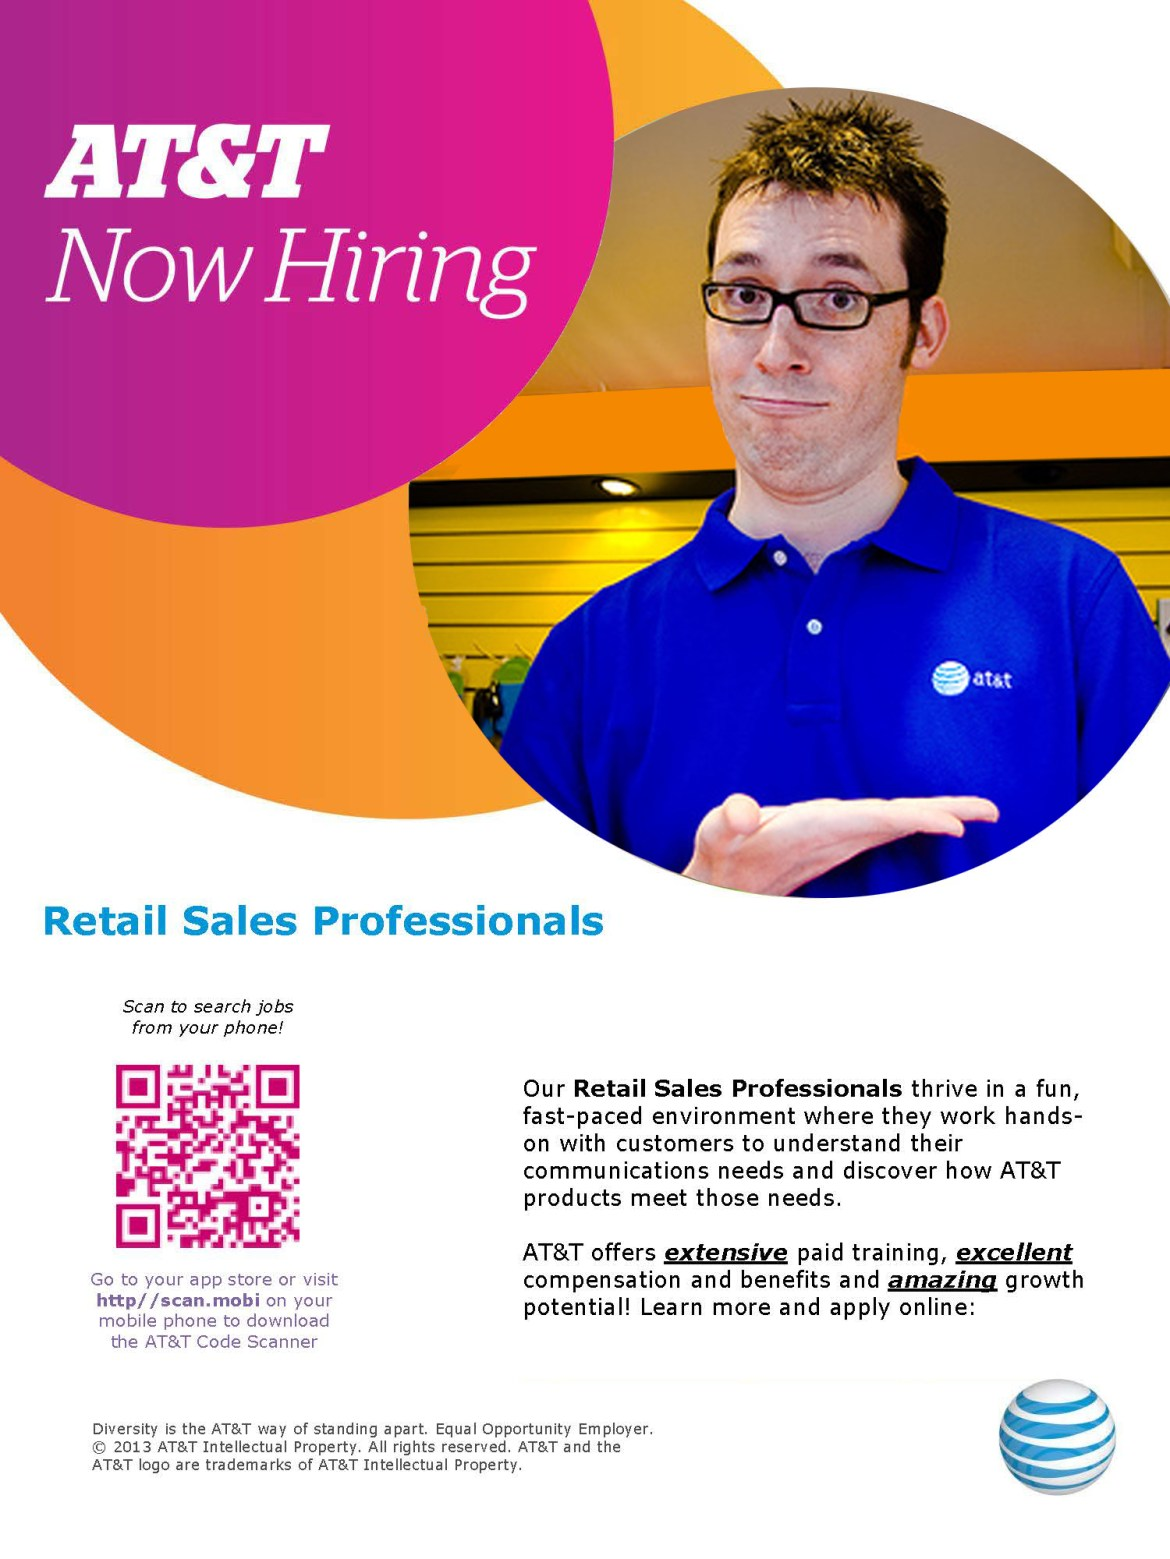 AT&T - Now Hiring